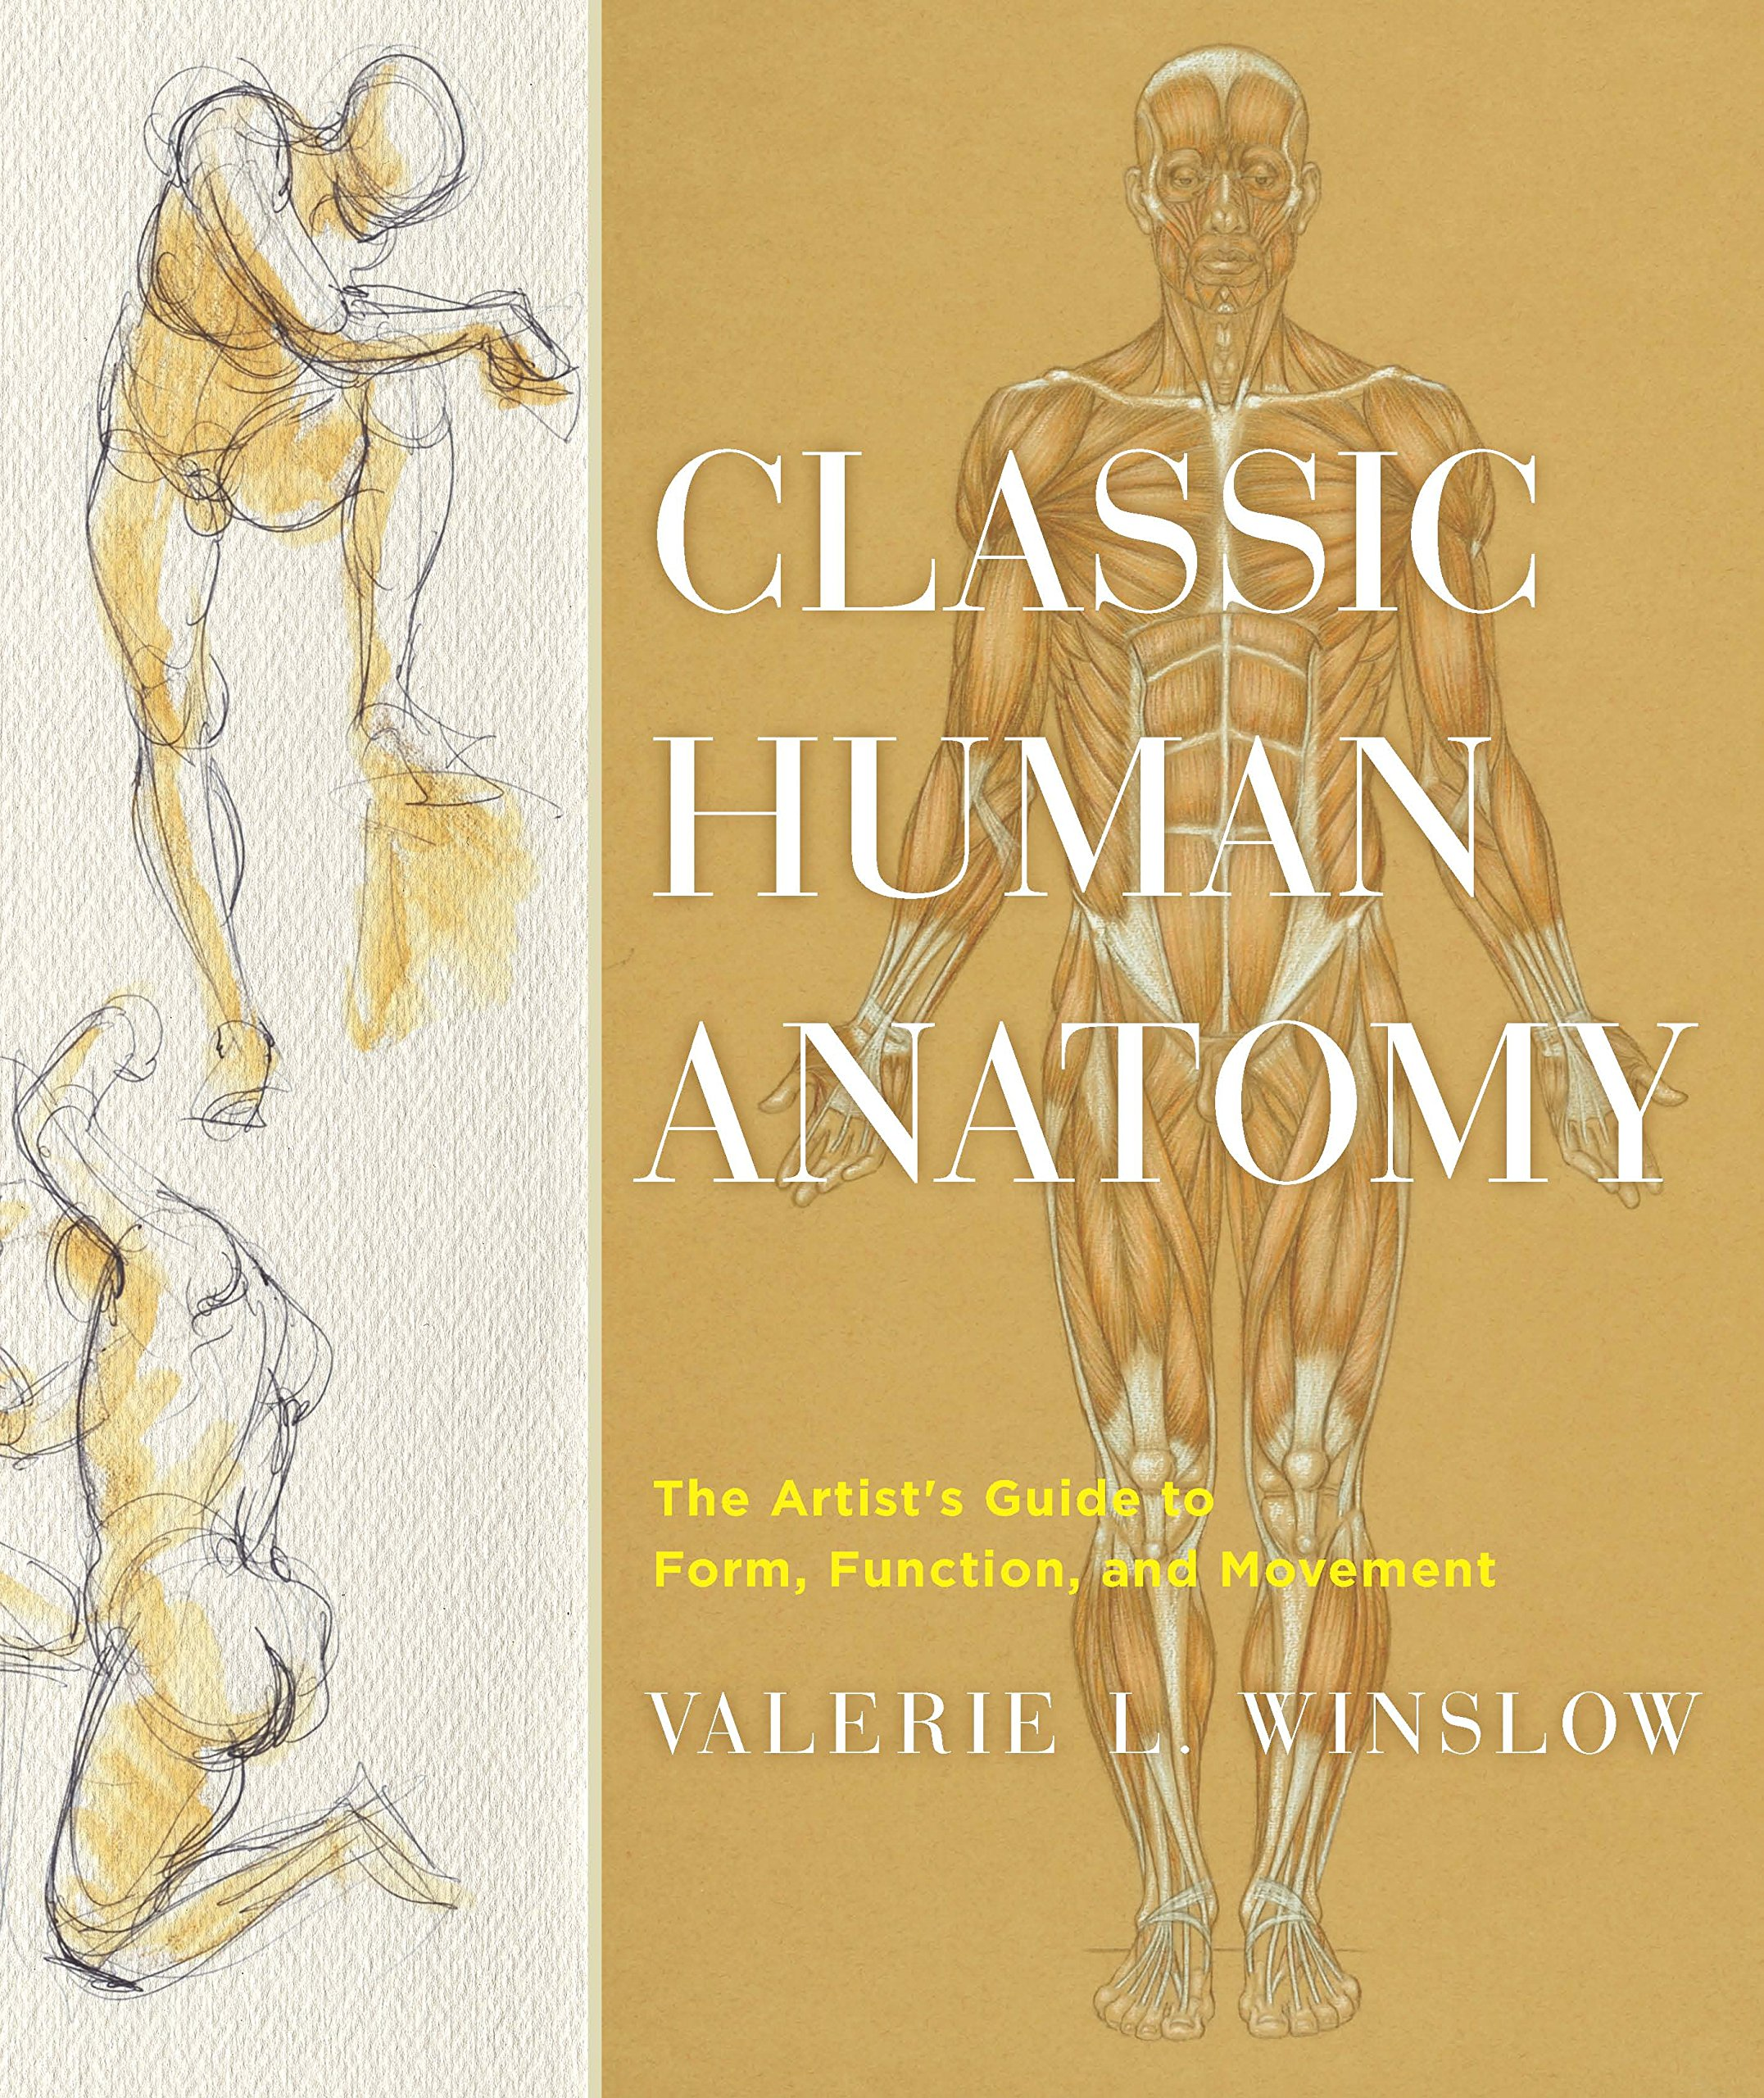 Classic human anatomy the artists guide to form function and classic human anatomy the artists guide to form function and movement valerie l winslow 9780823024155 amazon books fandeluxe Gallery